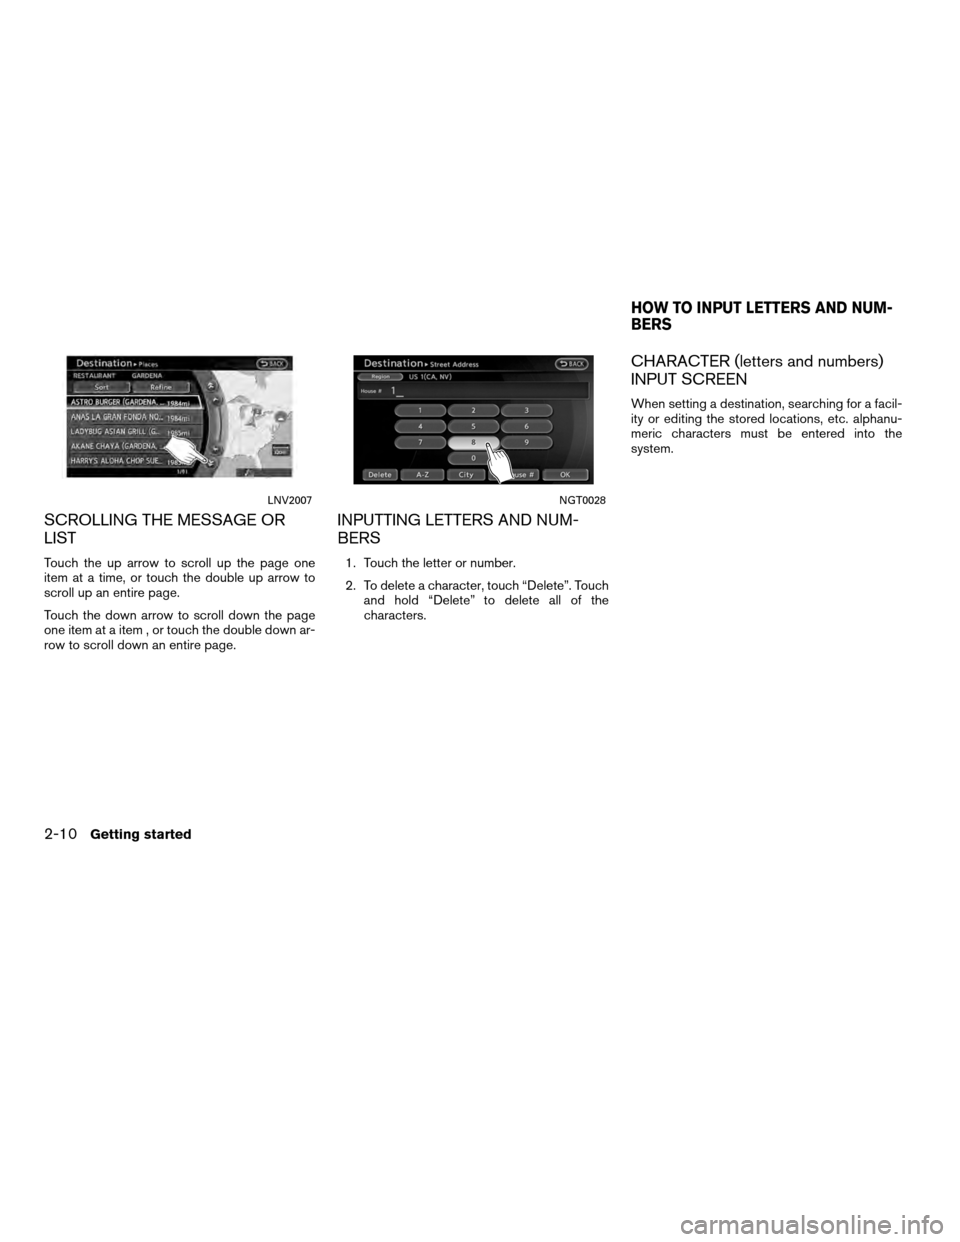 NISSAN ALTIMA COUPE 2012 D32 / 4.G Navigation Manual, Page 18